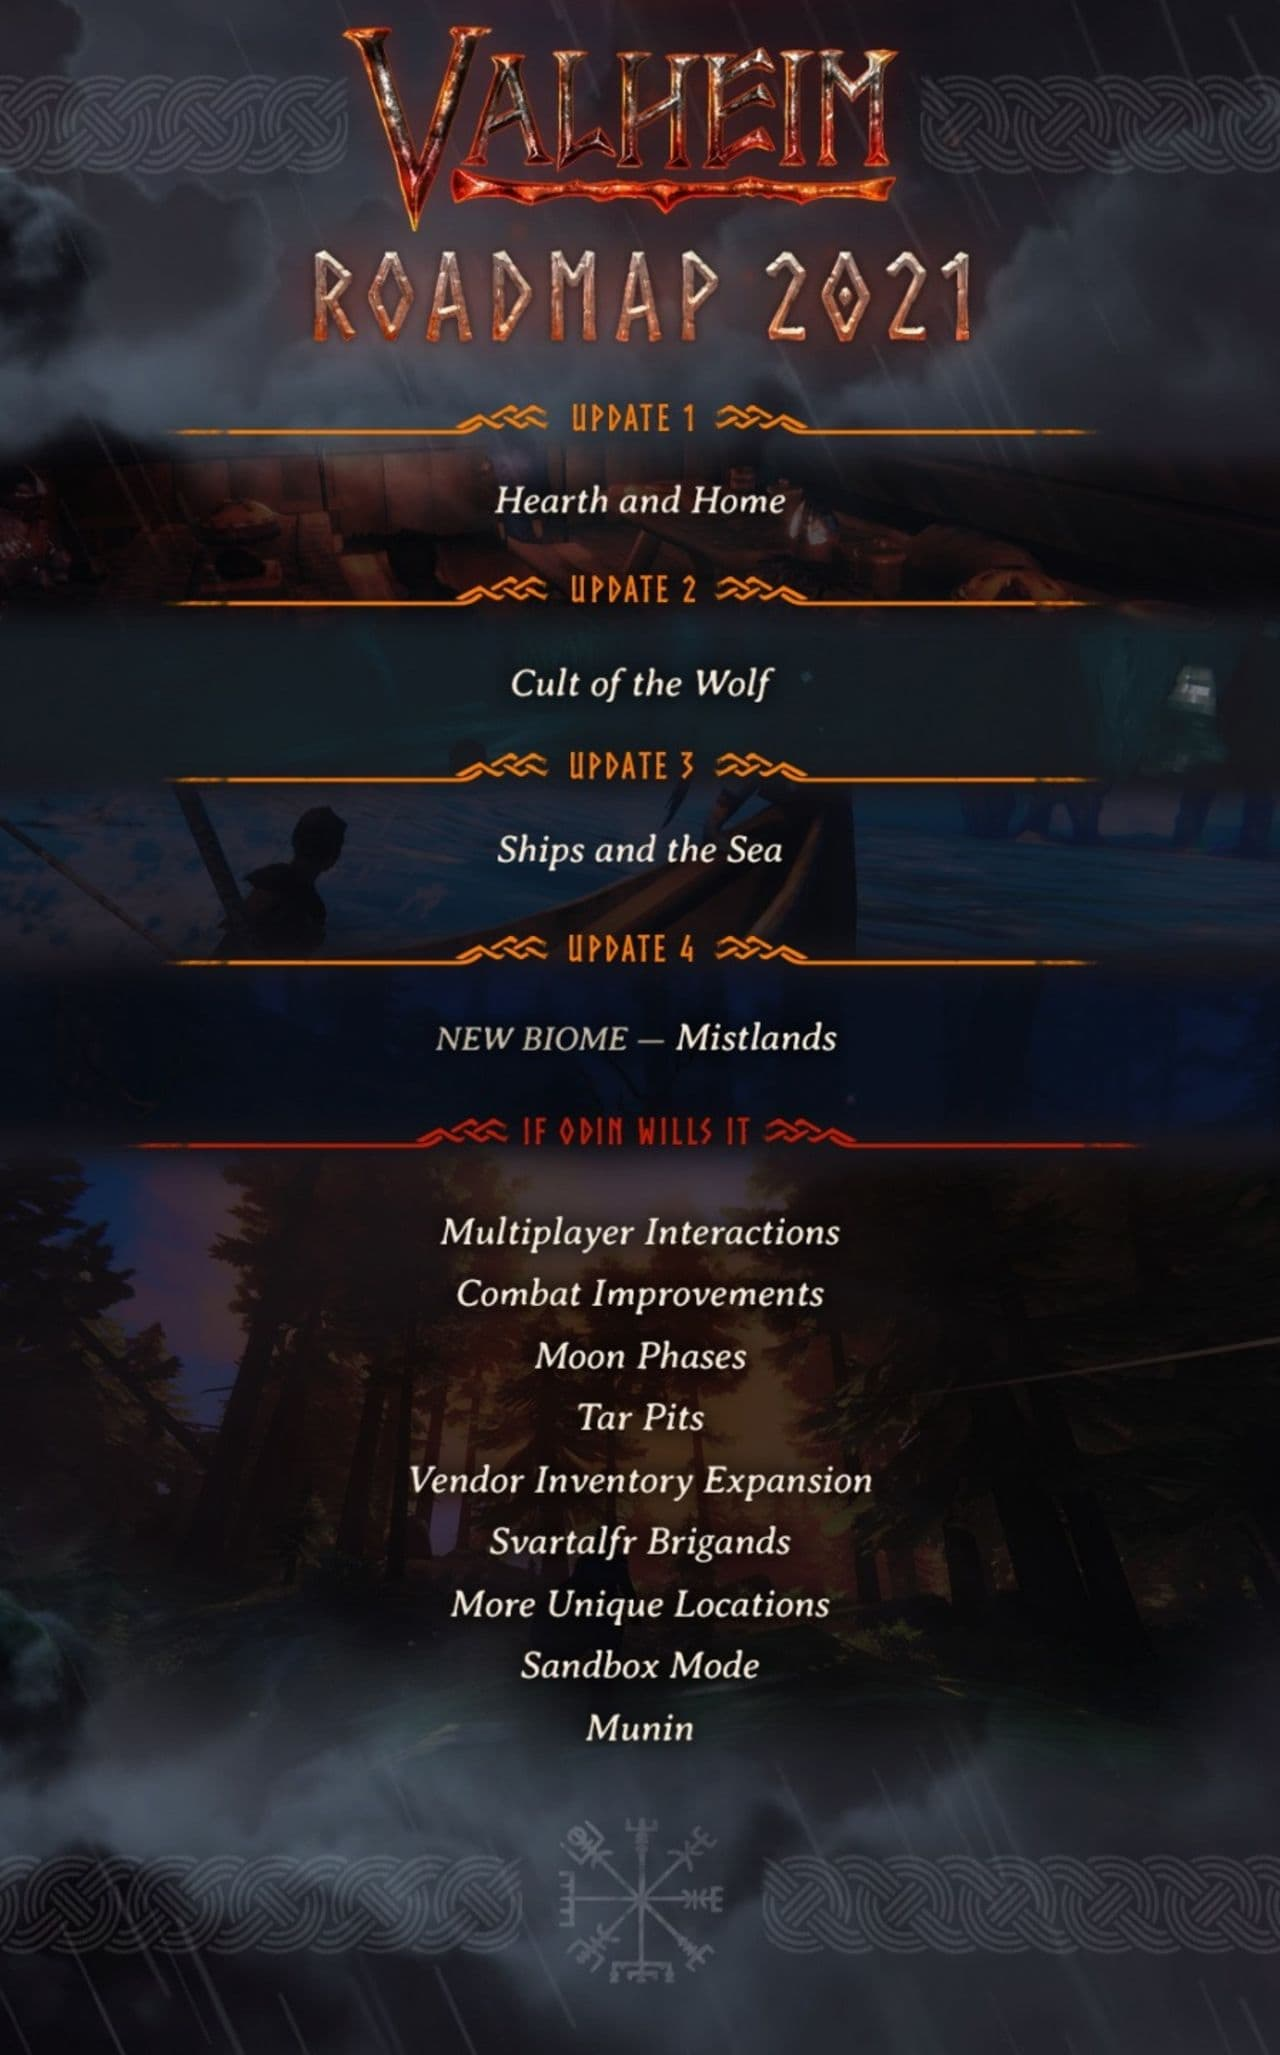 Valheim Roadmap 2021